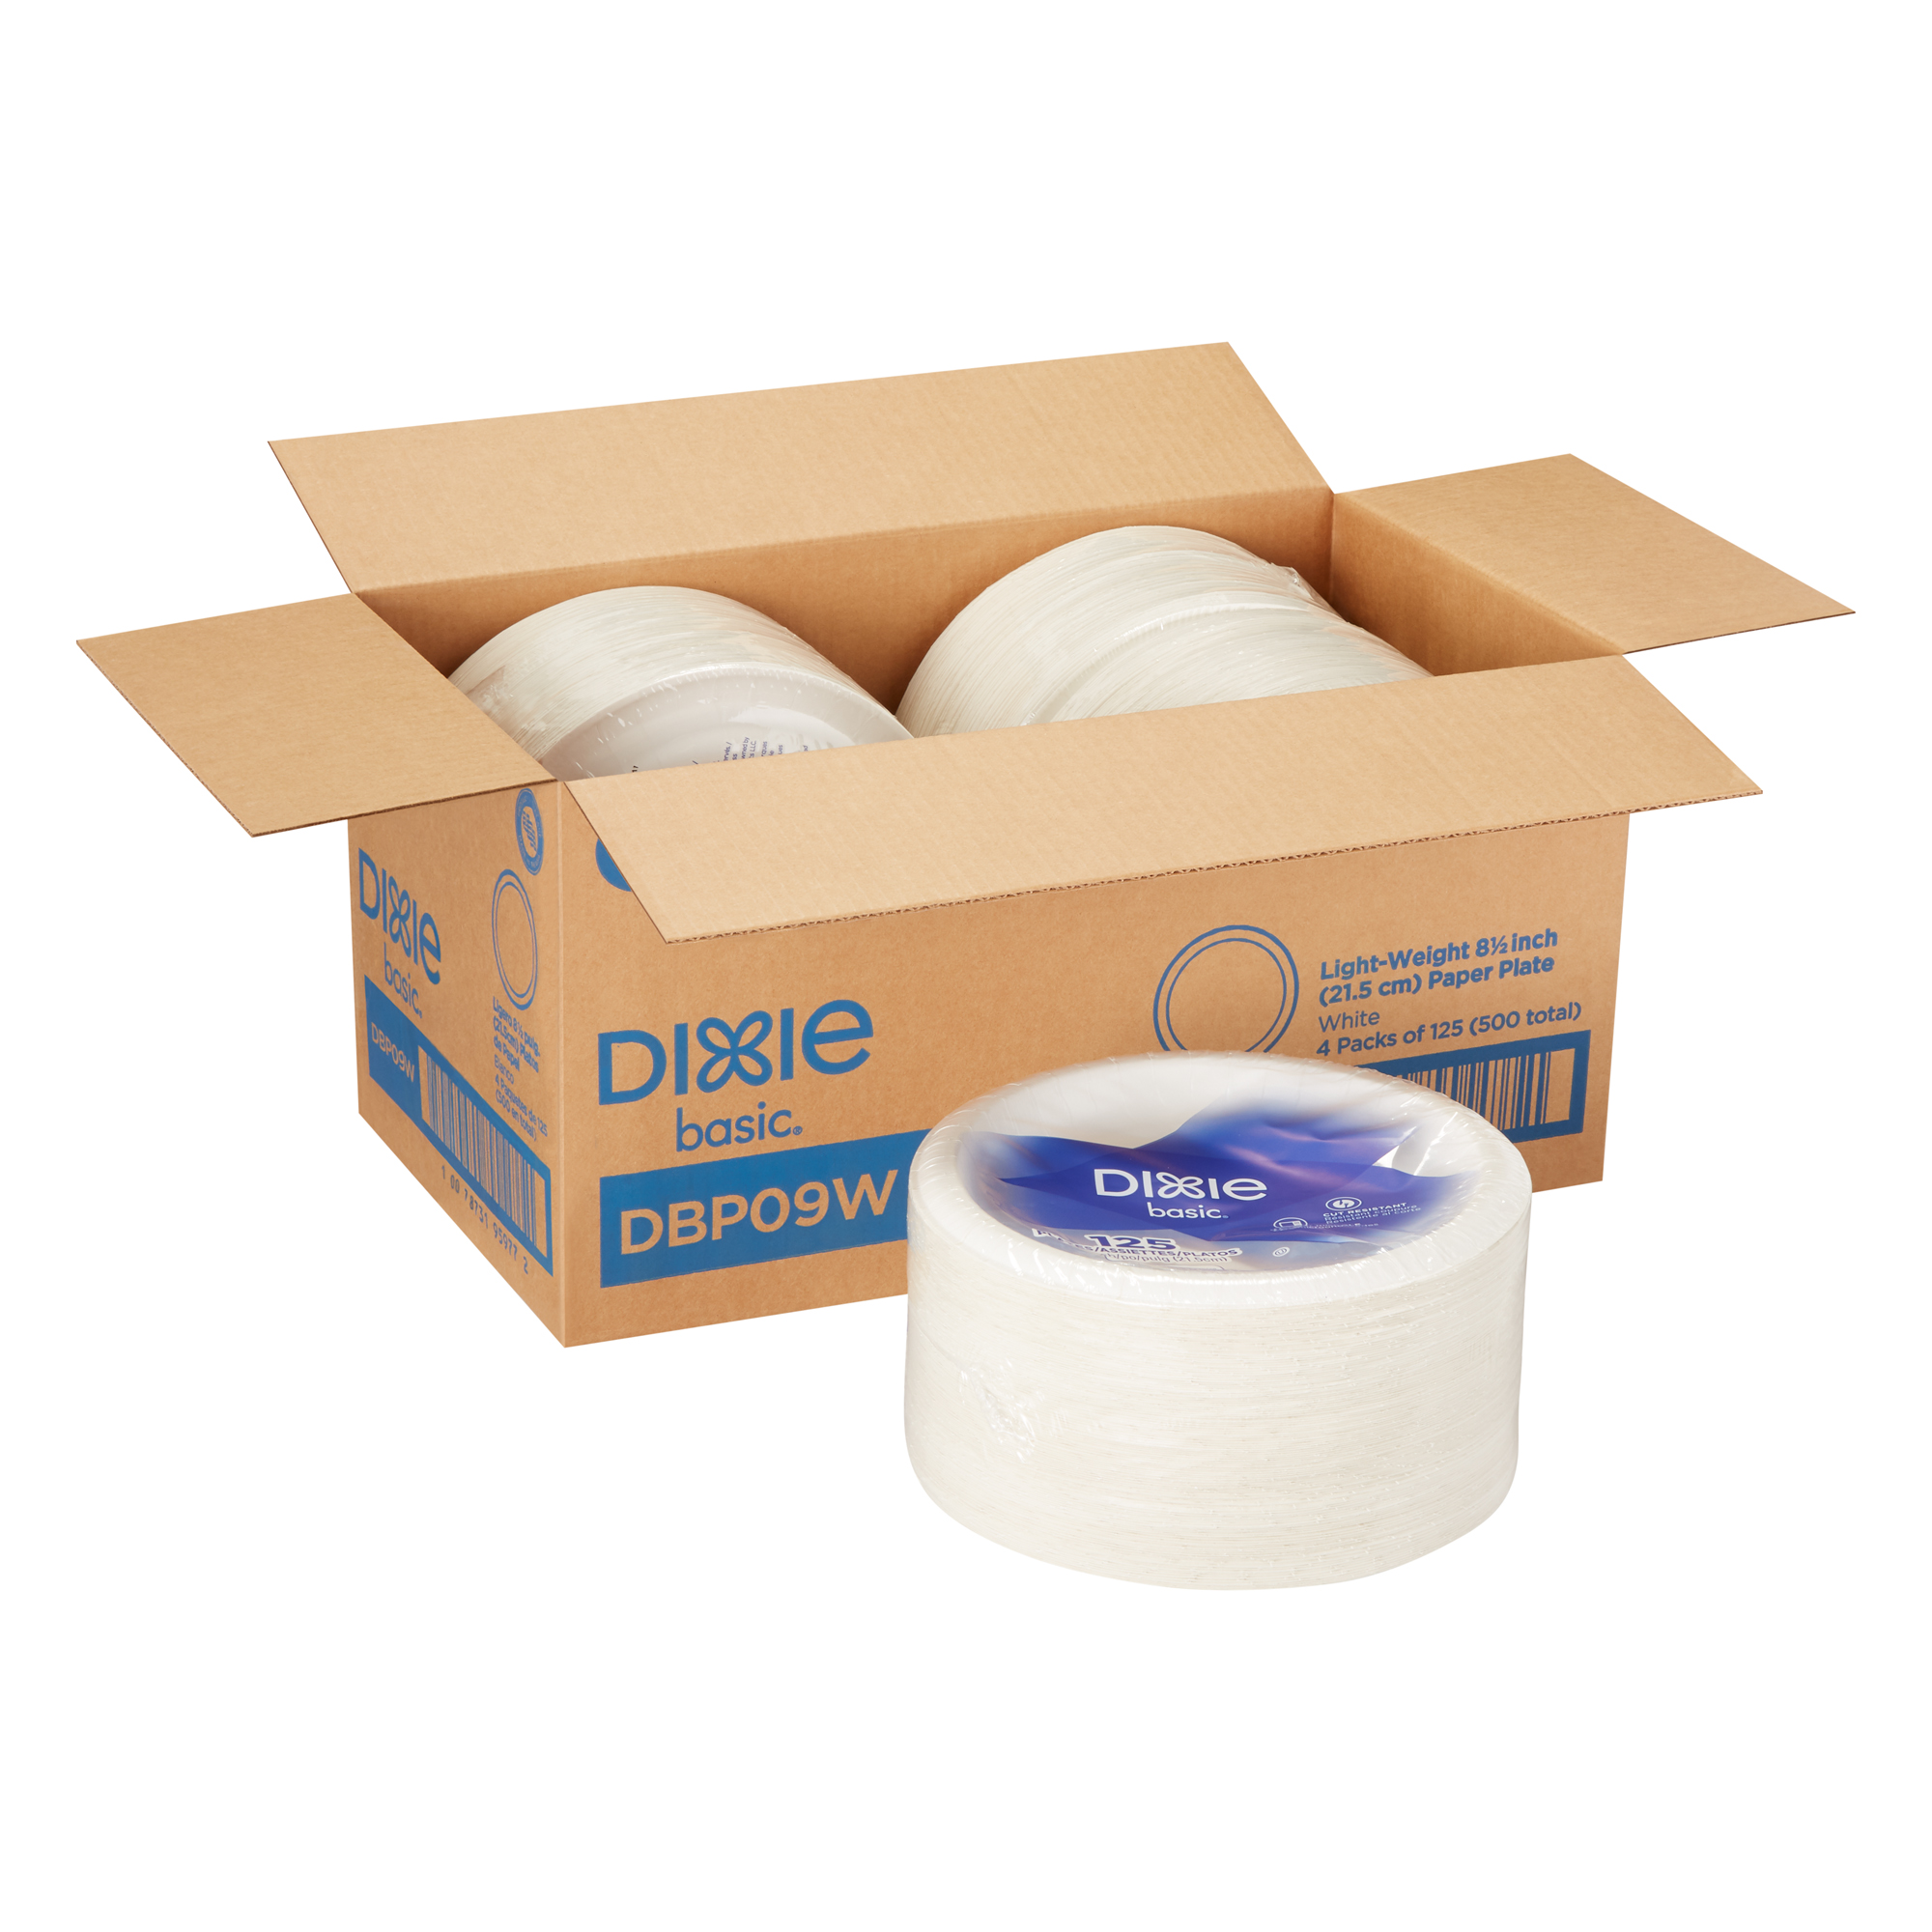 """125 Plates 500 Count 125 Plates Per Pack, 4 Packs Per Case 8 Pack Dixie Basic 9/"""" Light-Weight Paper Plates by GP PRO DBP09W Georgia-Pacific White"""